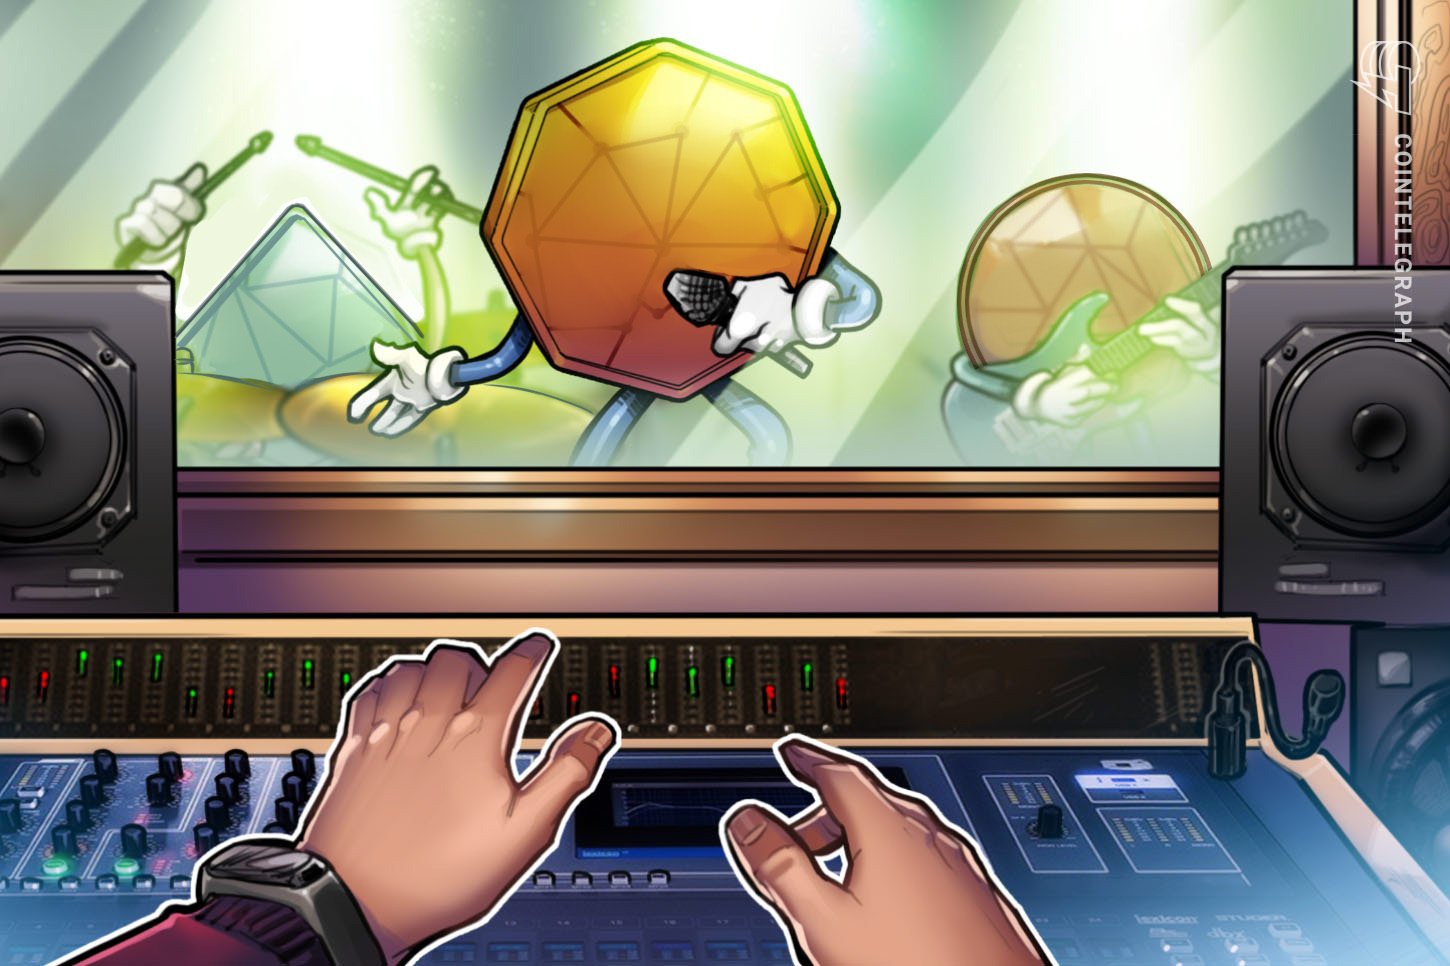 Cryptocurrency's latest use case: Music production?